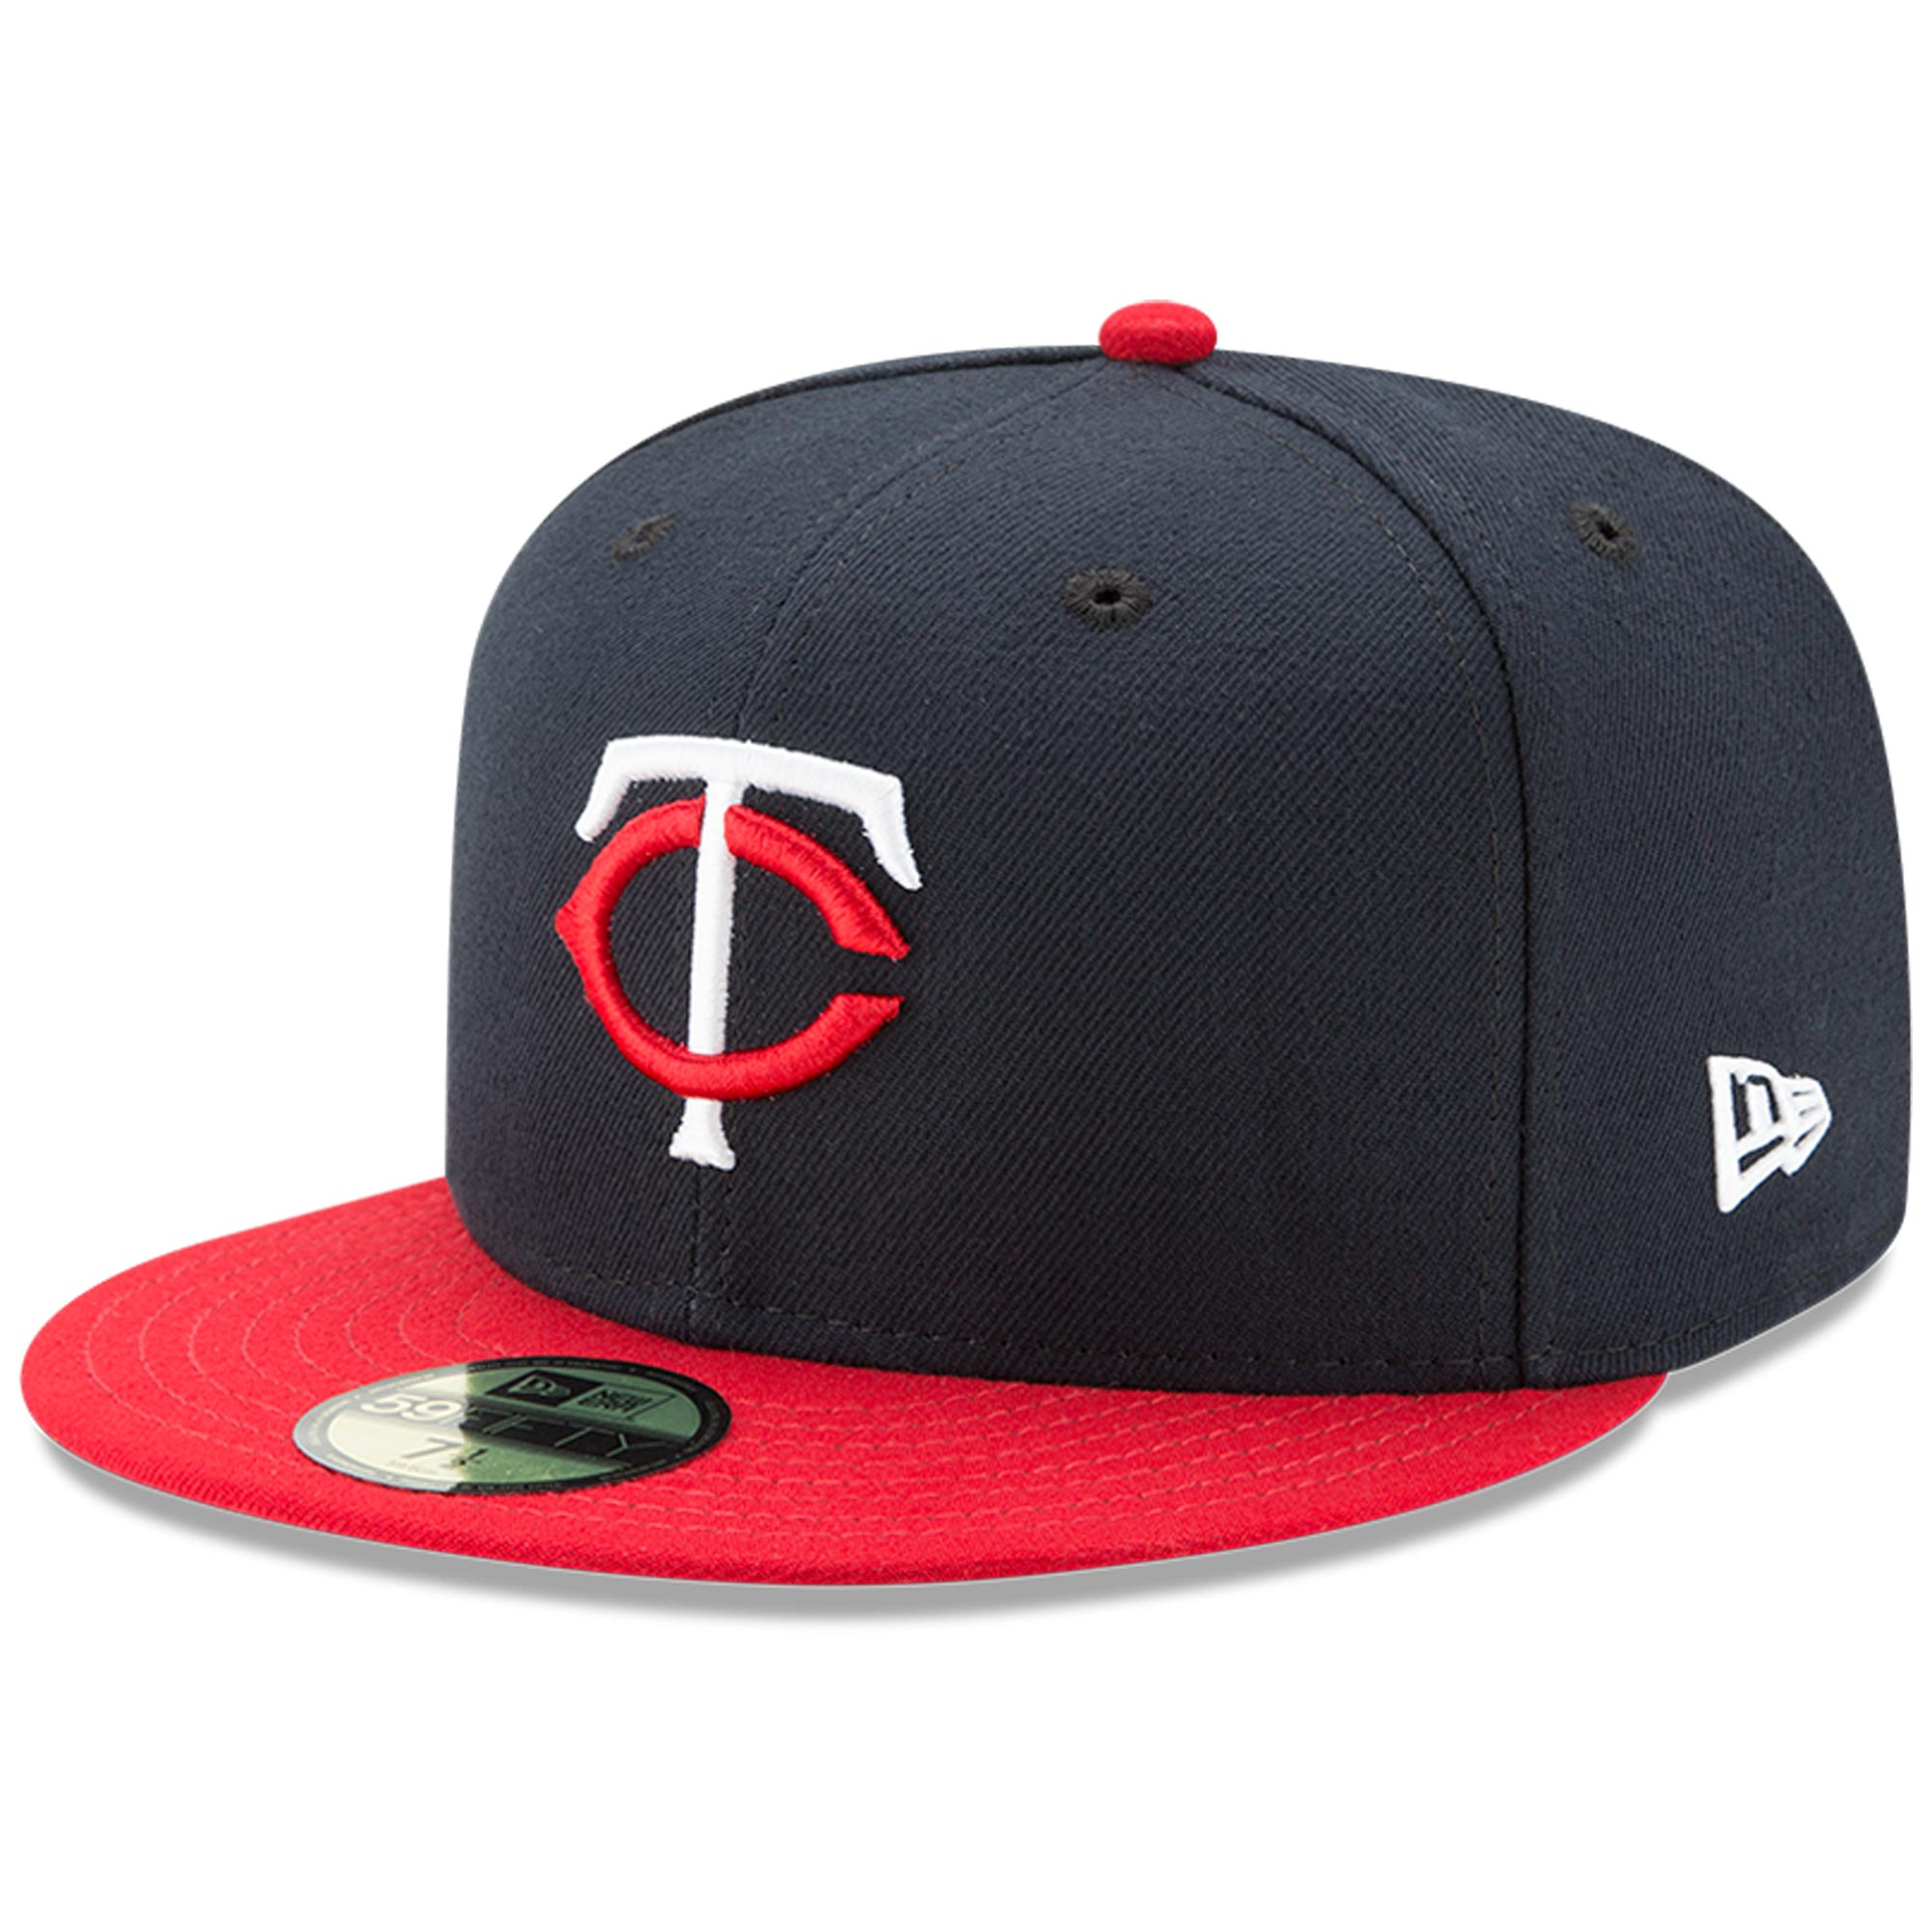 Minnesota Twins New Era Youth Authentic Collection On-Field Road 59FIFTY Fitted Hat - Navy/Red